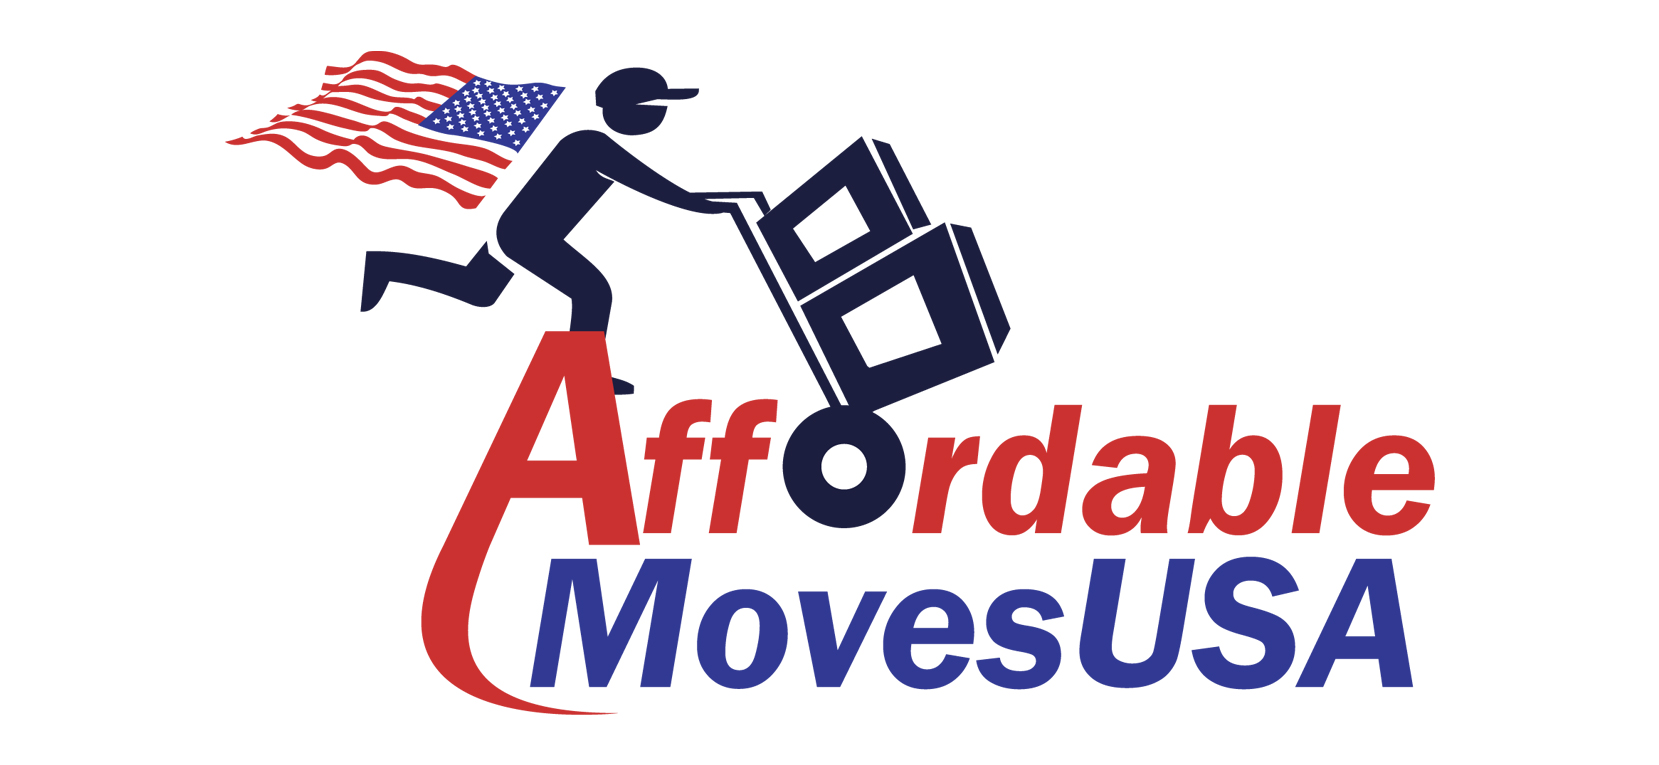 AffordableMovesUSA